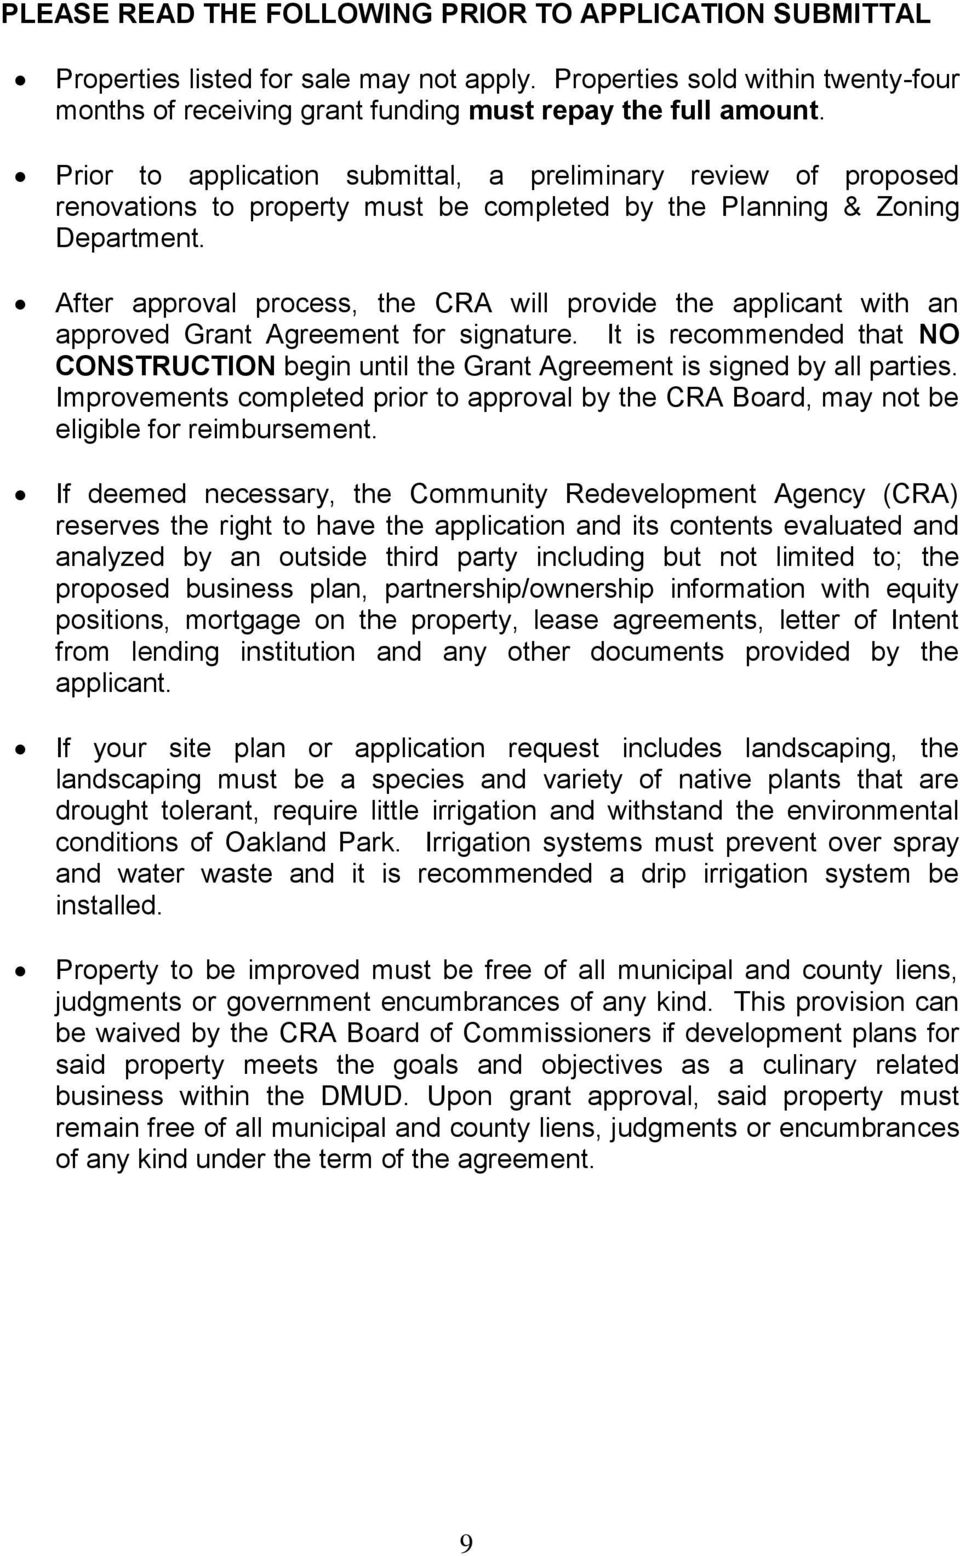 After approval process, the CRA will provide the applicant with an approved Grant Agreement for signature.